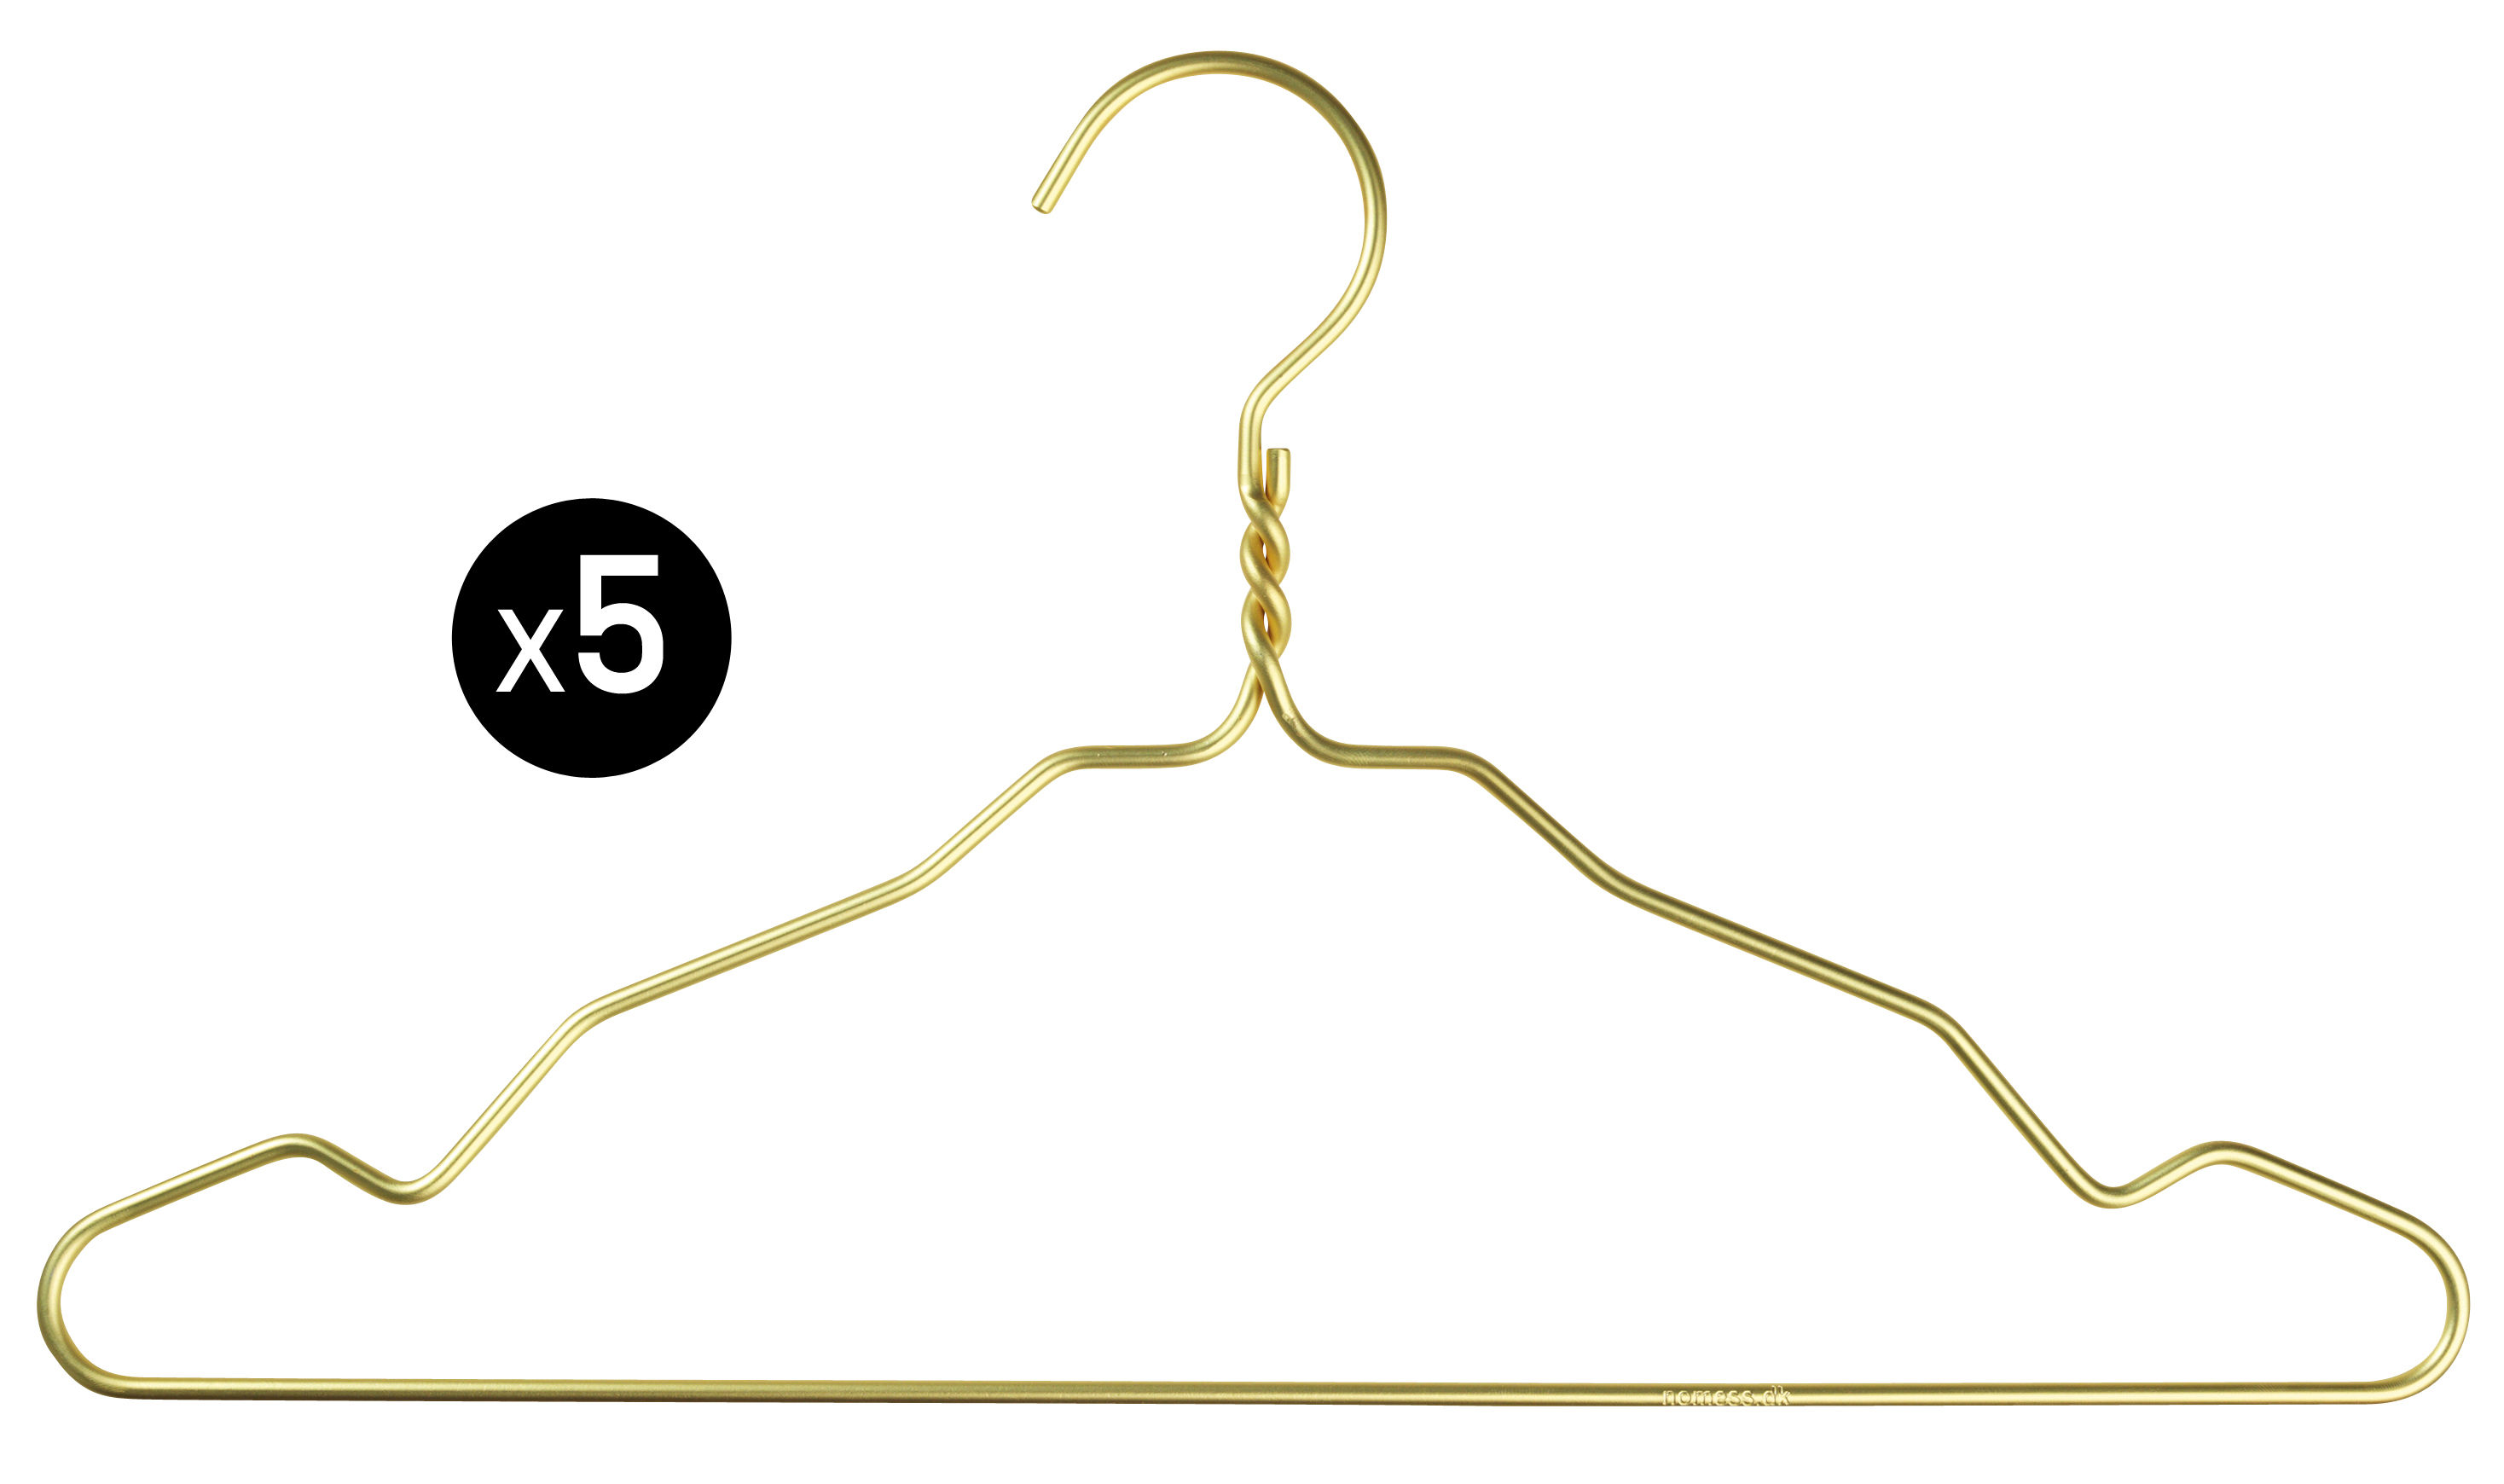 Decoration - Coat Stands & Hooks - W. Notch Hanger - / Set of 5 pieces by Nomess - Gold - Aluminium